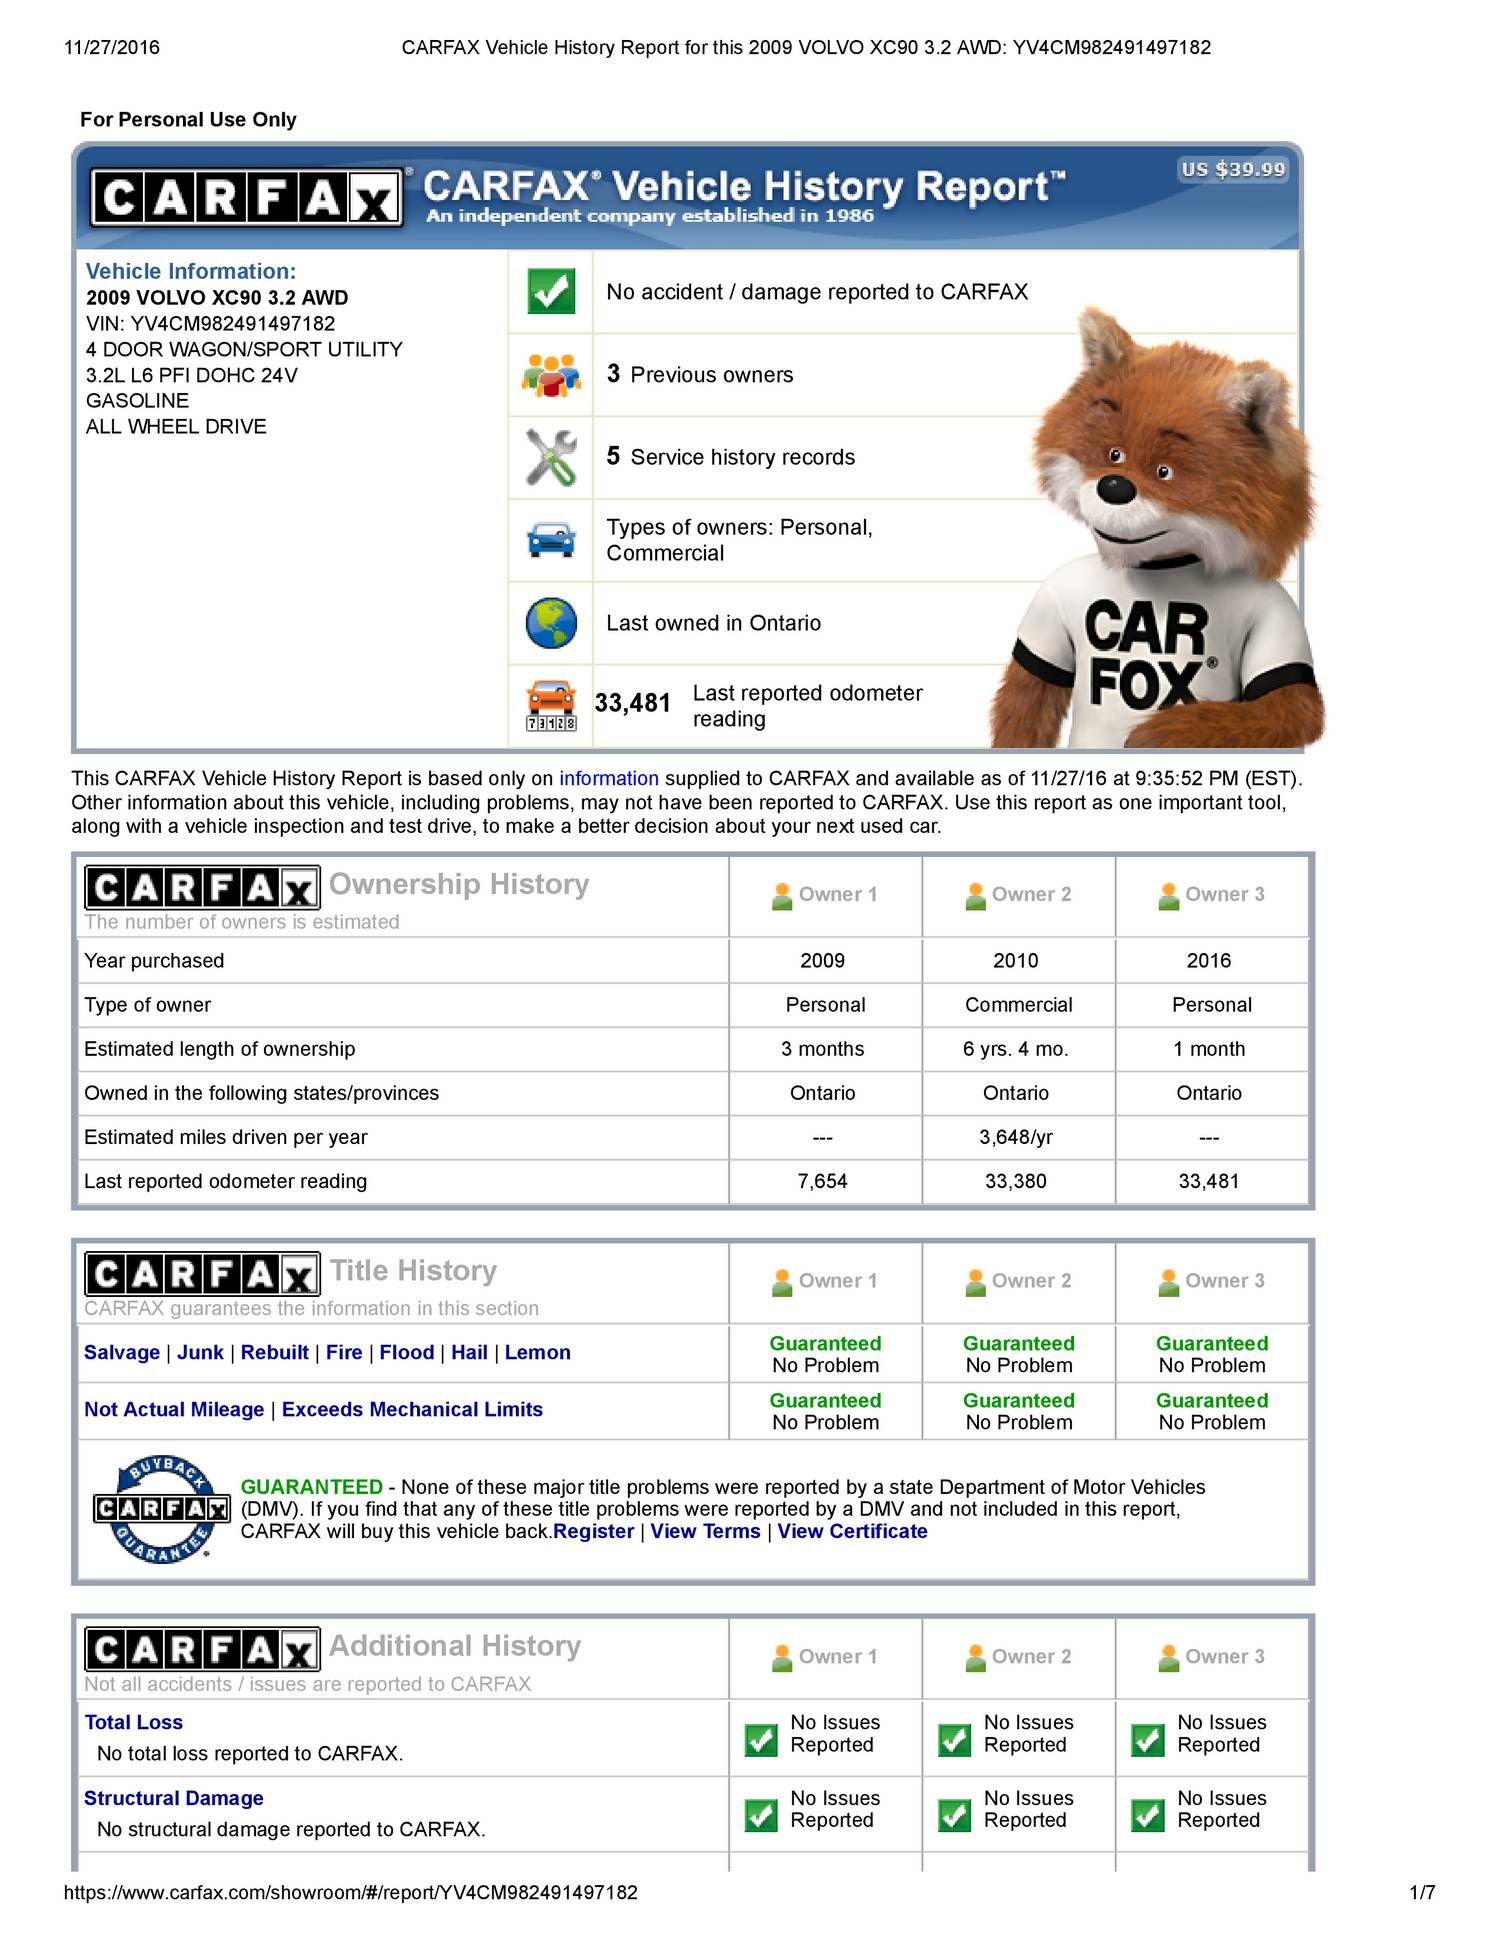 carfax vehicle history report for this 2009 volvo xc90 3